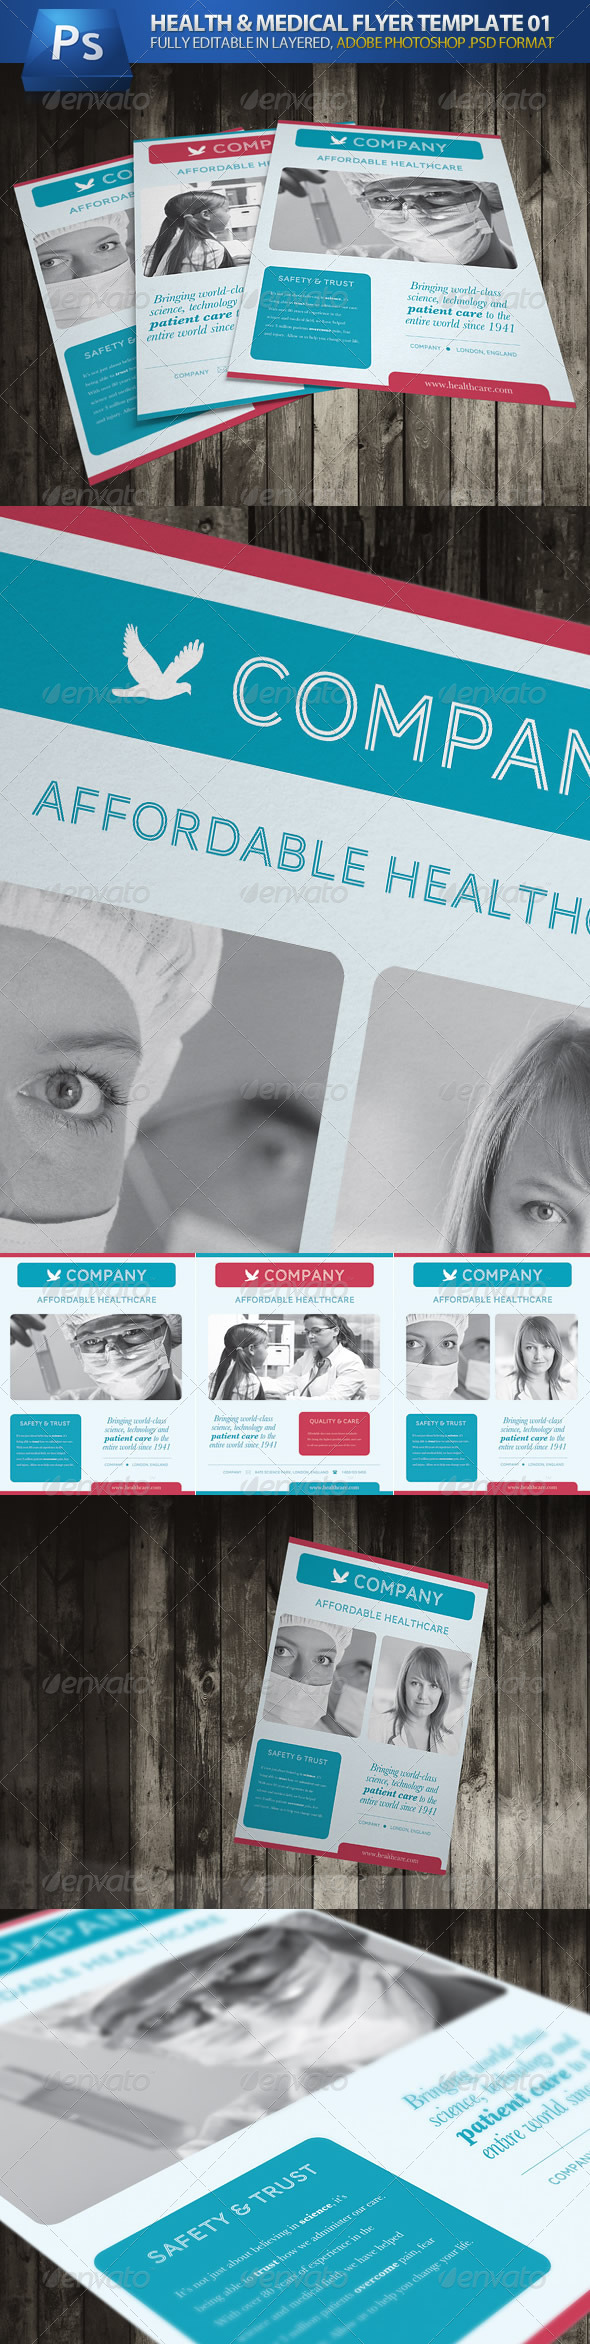 Health & Medical Flyer 01 - Corporate Flyers